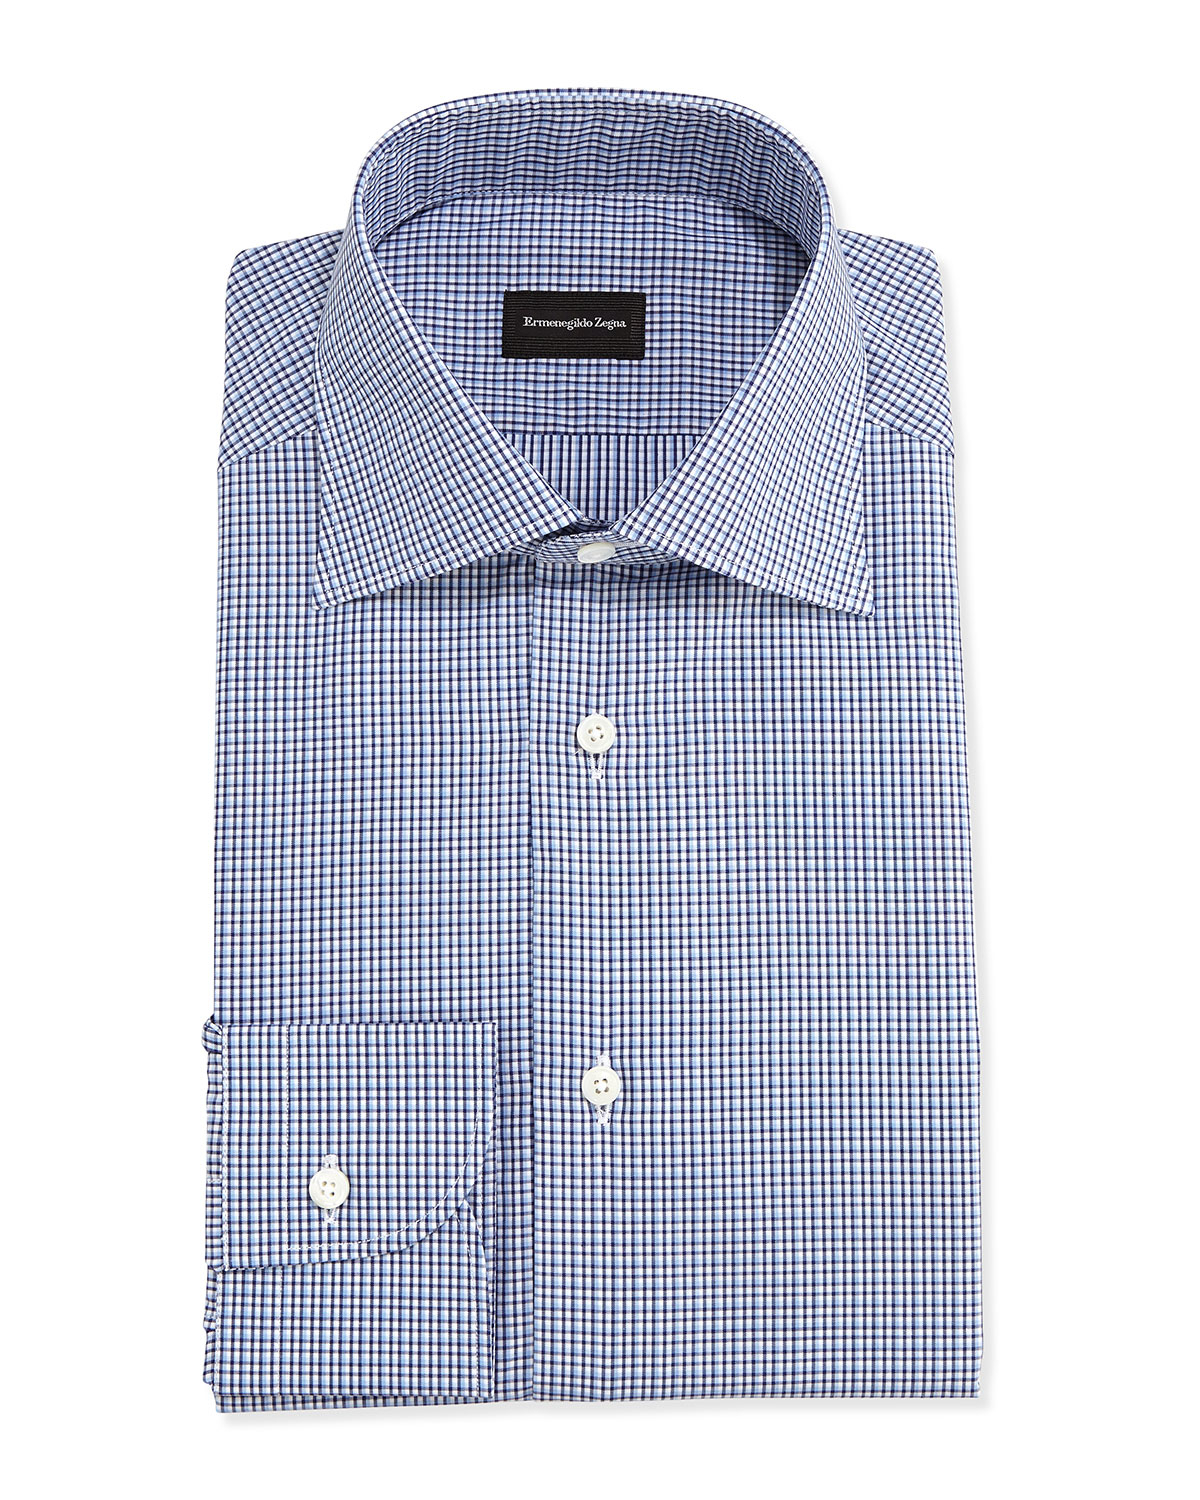 Ermenegildo zegna Tight-check Dress Shirt in Blue for Men ...